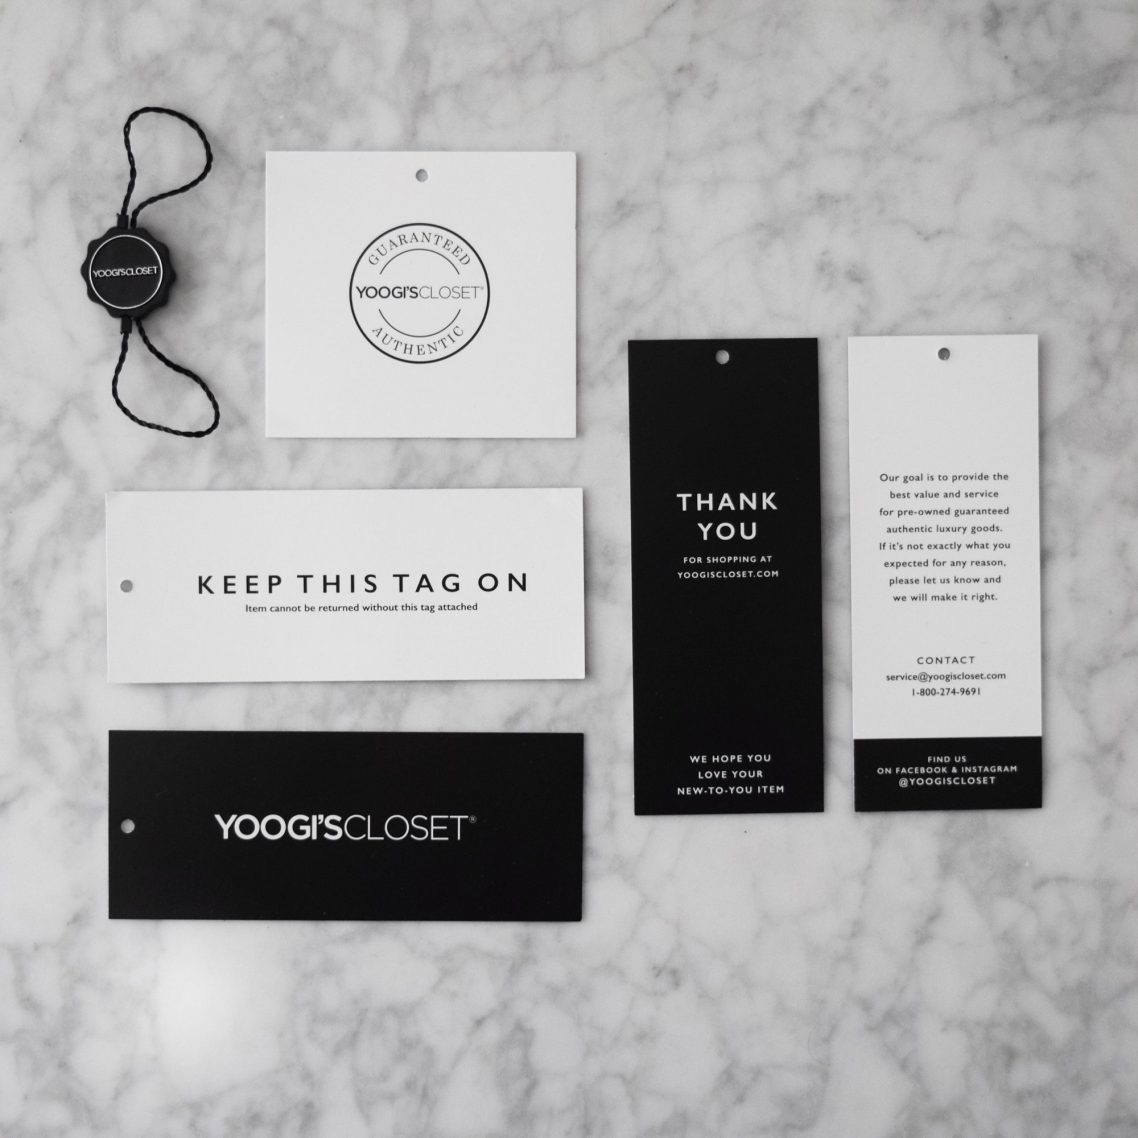 Retail branding design samples